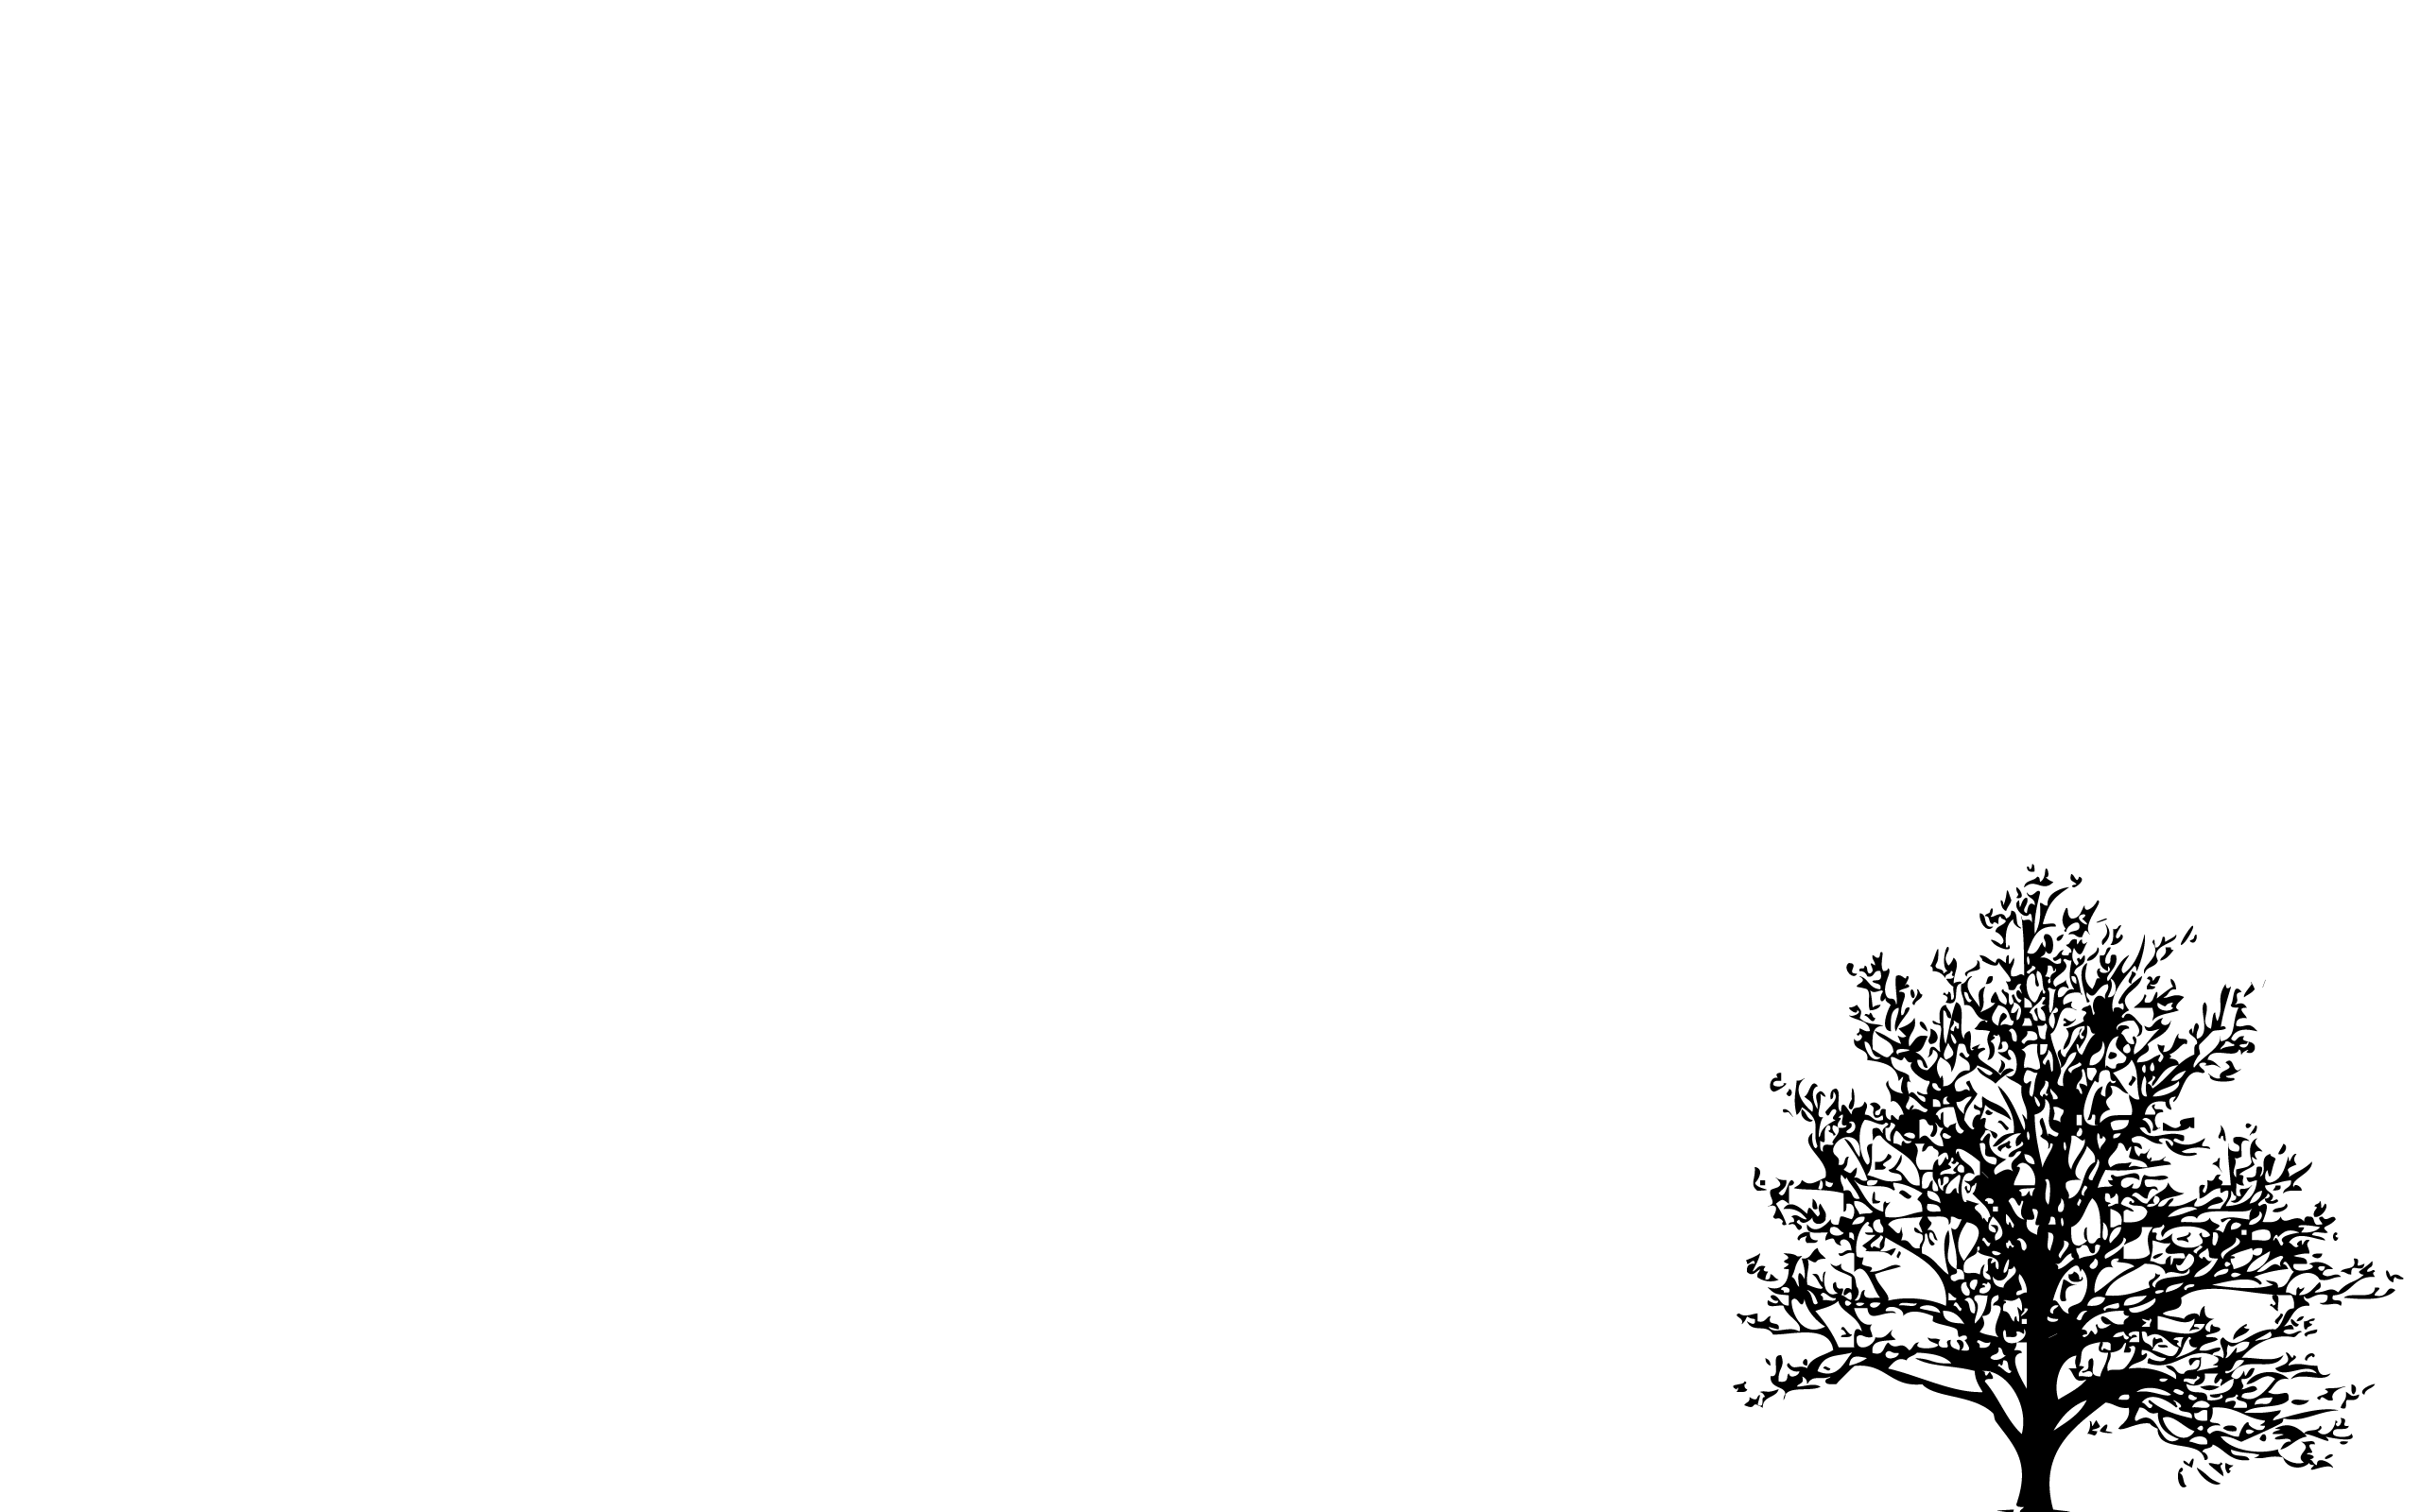 White Minimalist Desktop Wallpapers Top Free White Minimalist Desktop Backgrounds Wallpaperaccess